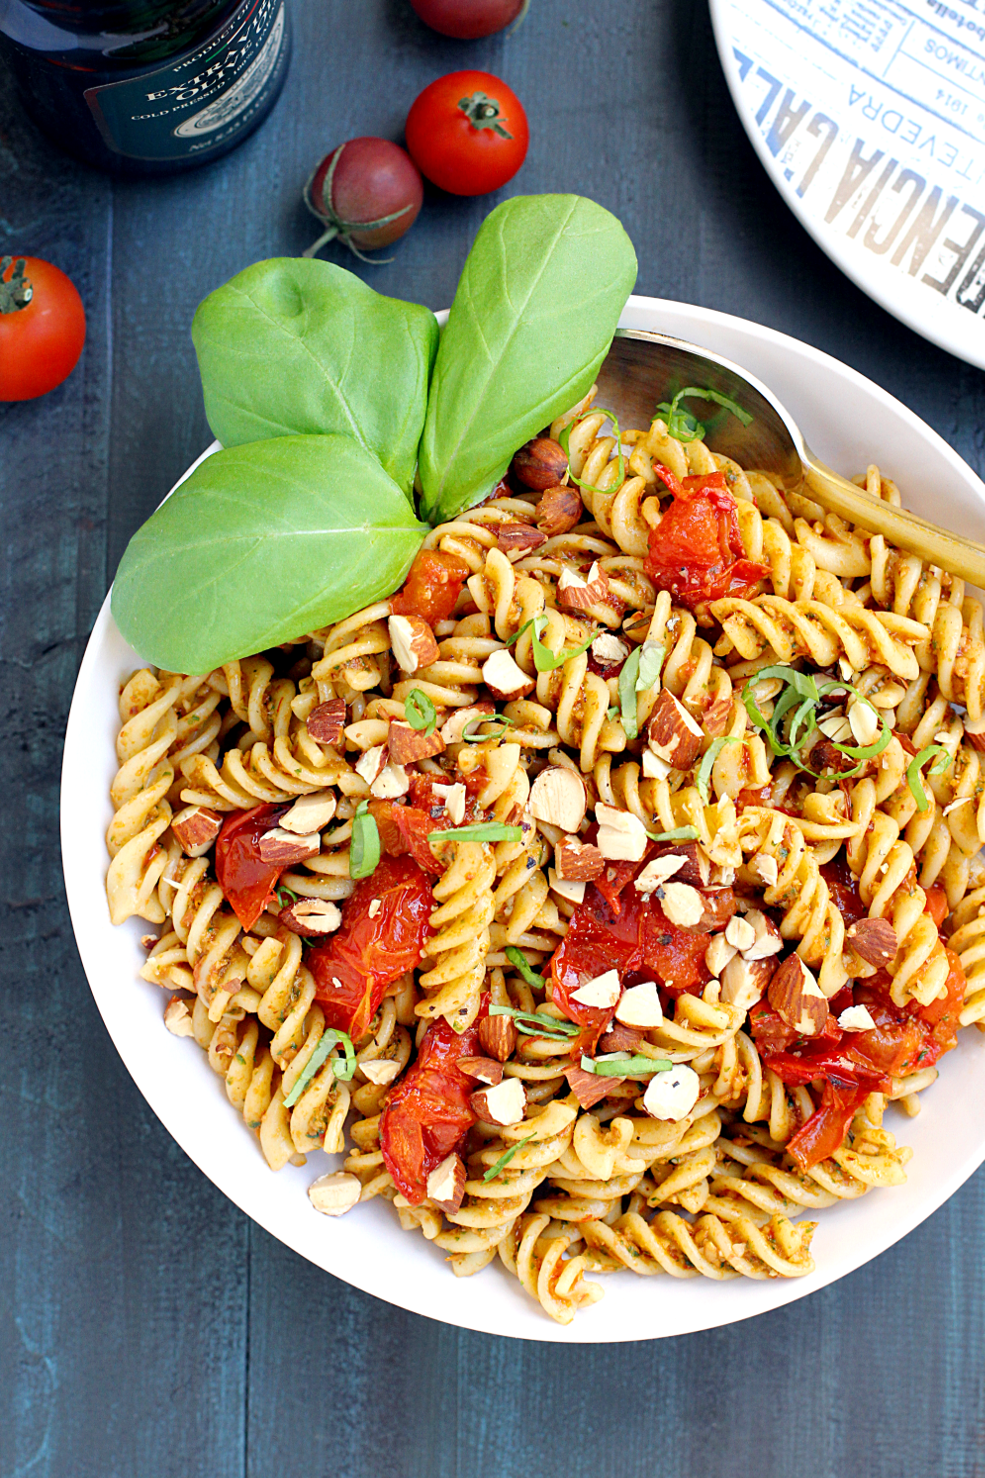 Image of pasta with roasted tomato pesto from the top.